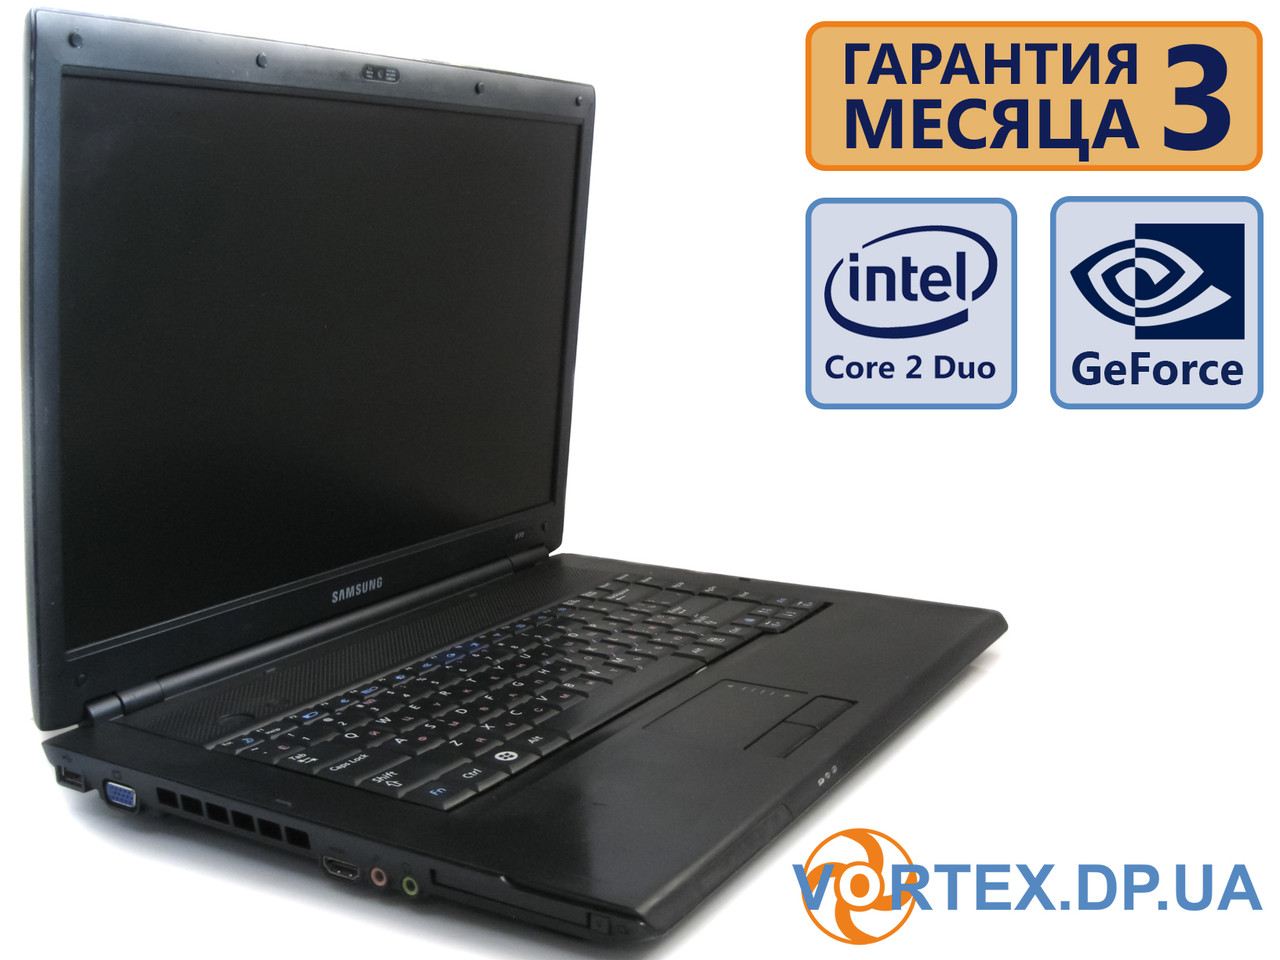 Ноутбук Samsung R70 15.4 (1680x1050) / Intel Core 2 Duo T5750 (2x2GHz)